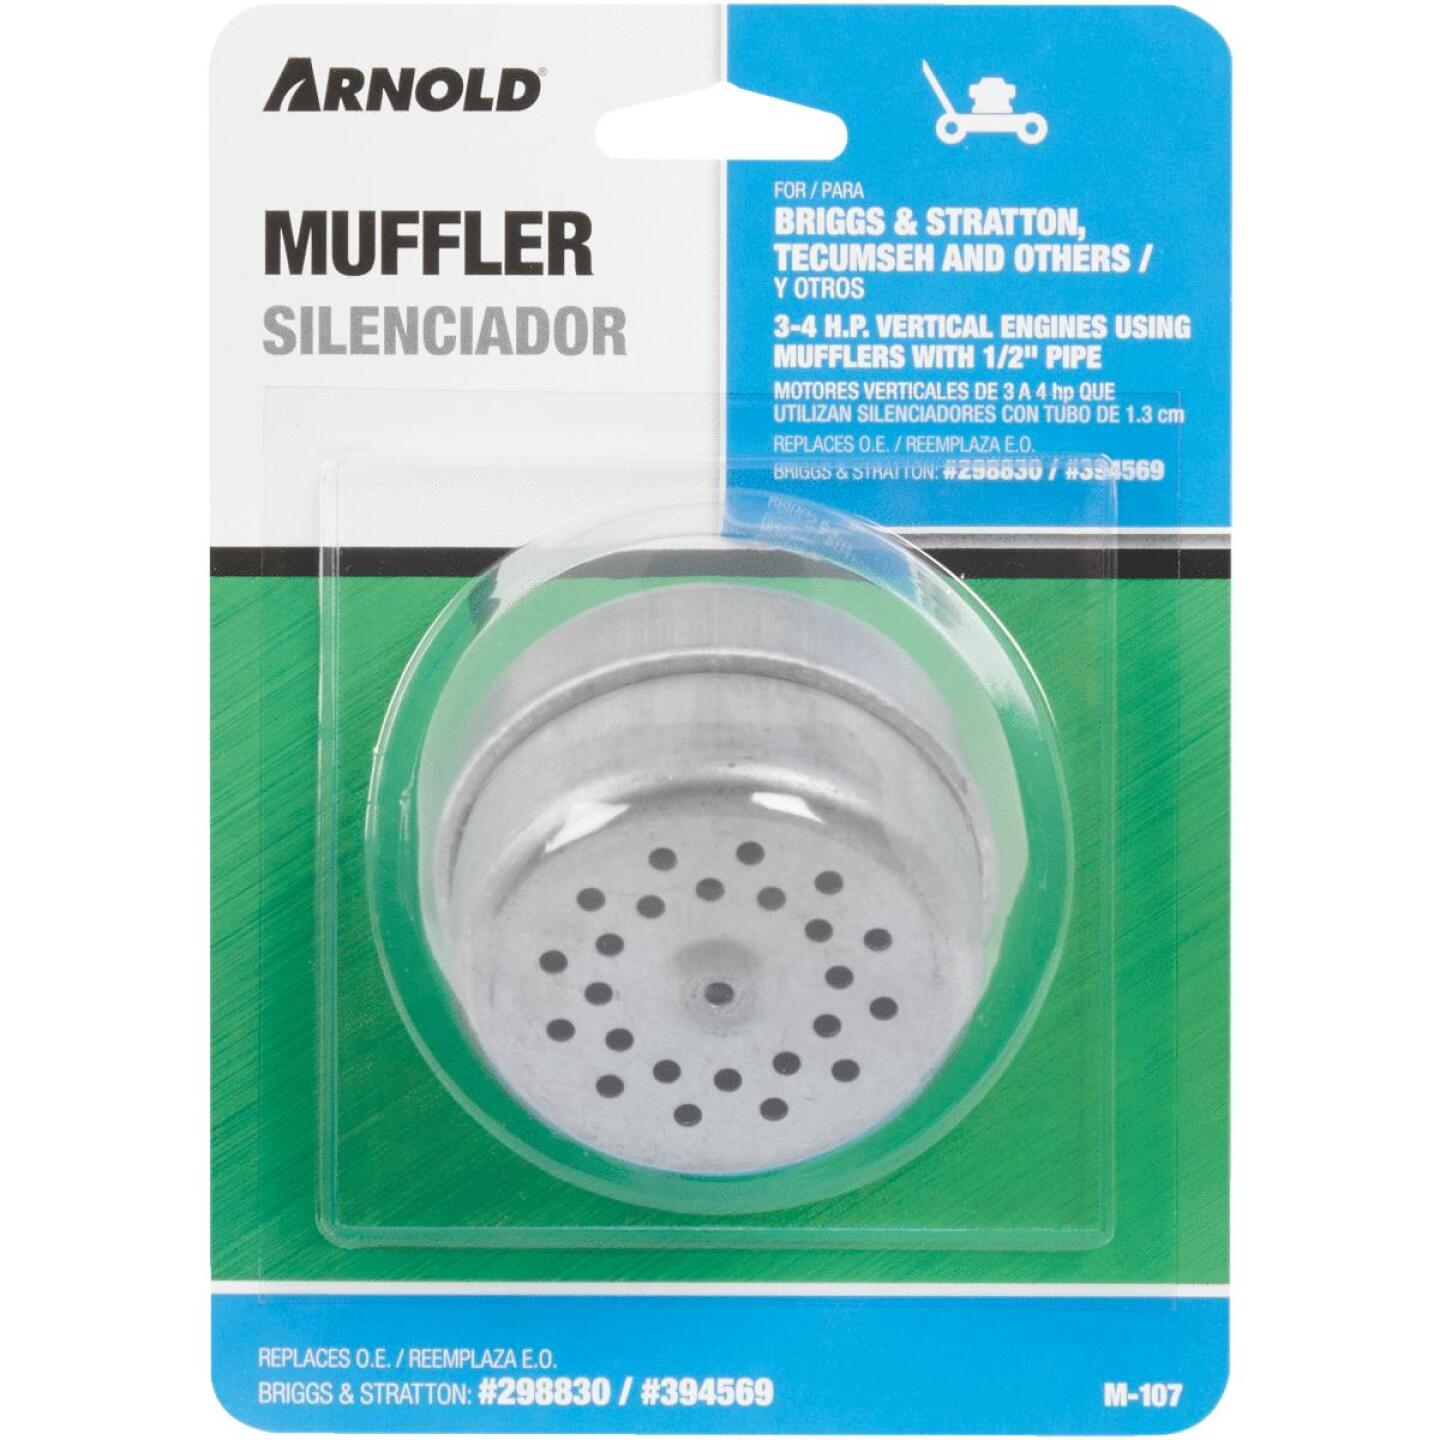 Arnold 2-1/4 In. 3 to 4 HP Vertical Engine Muffler Image 2